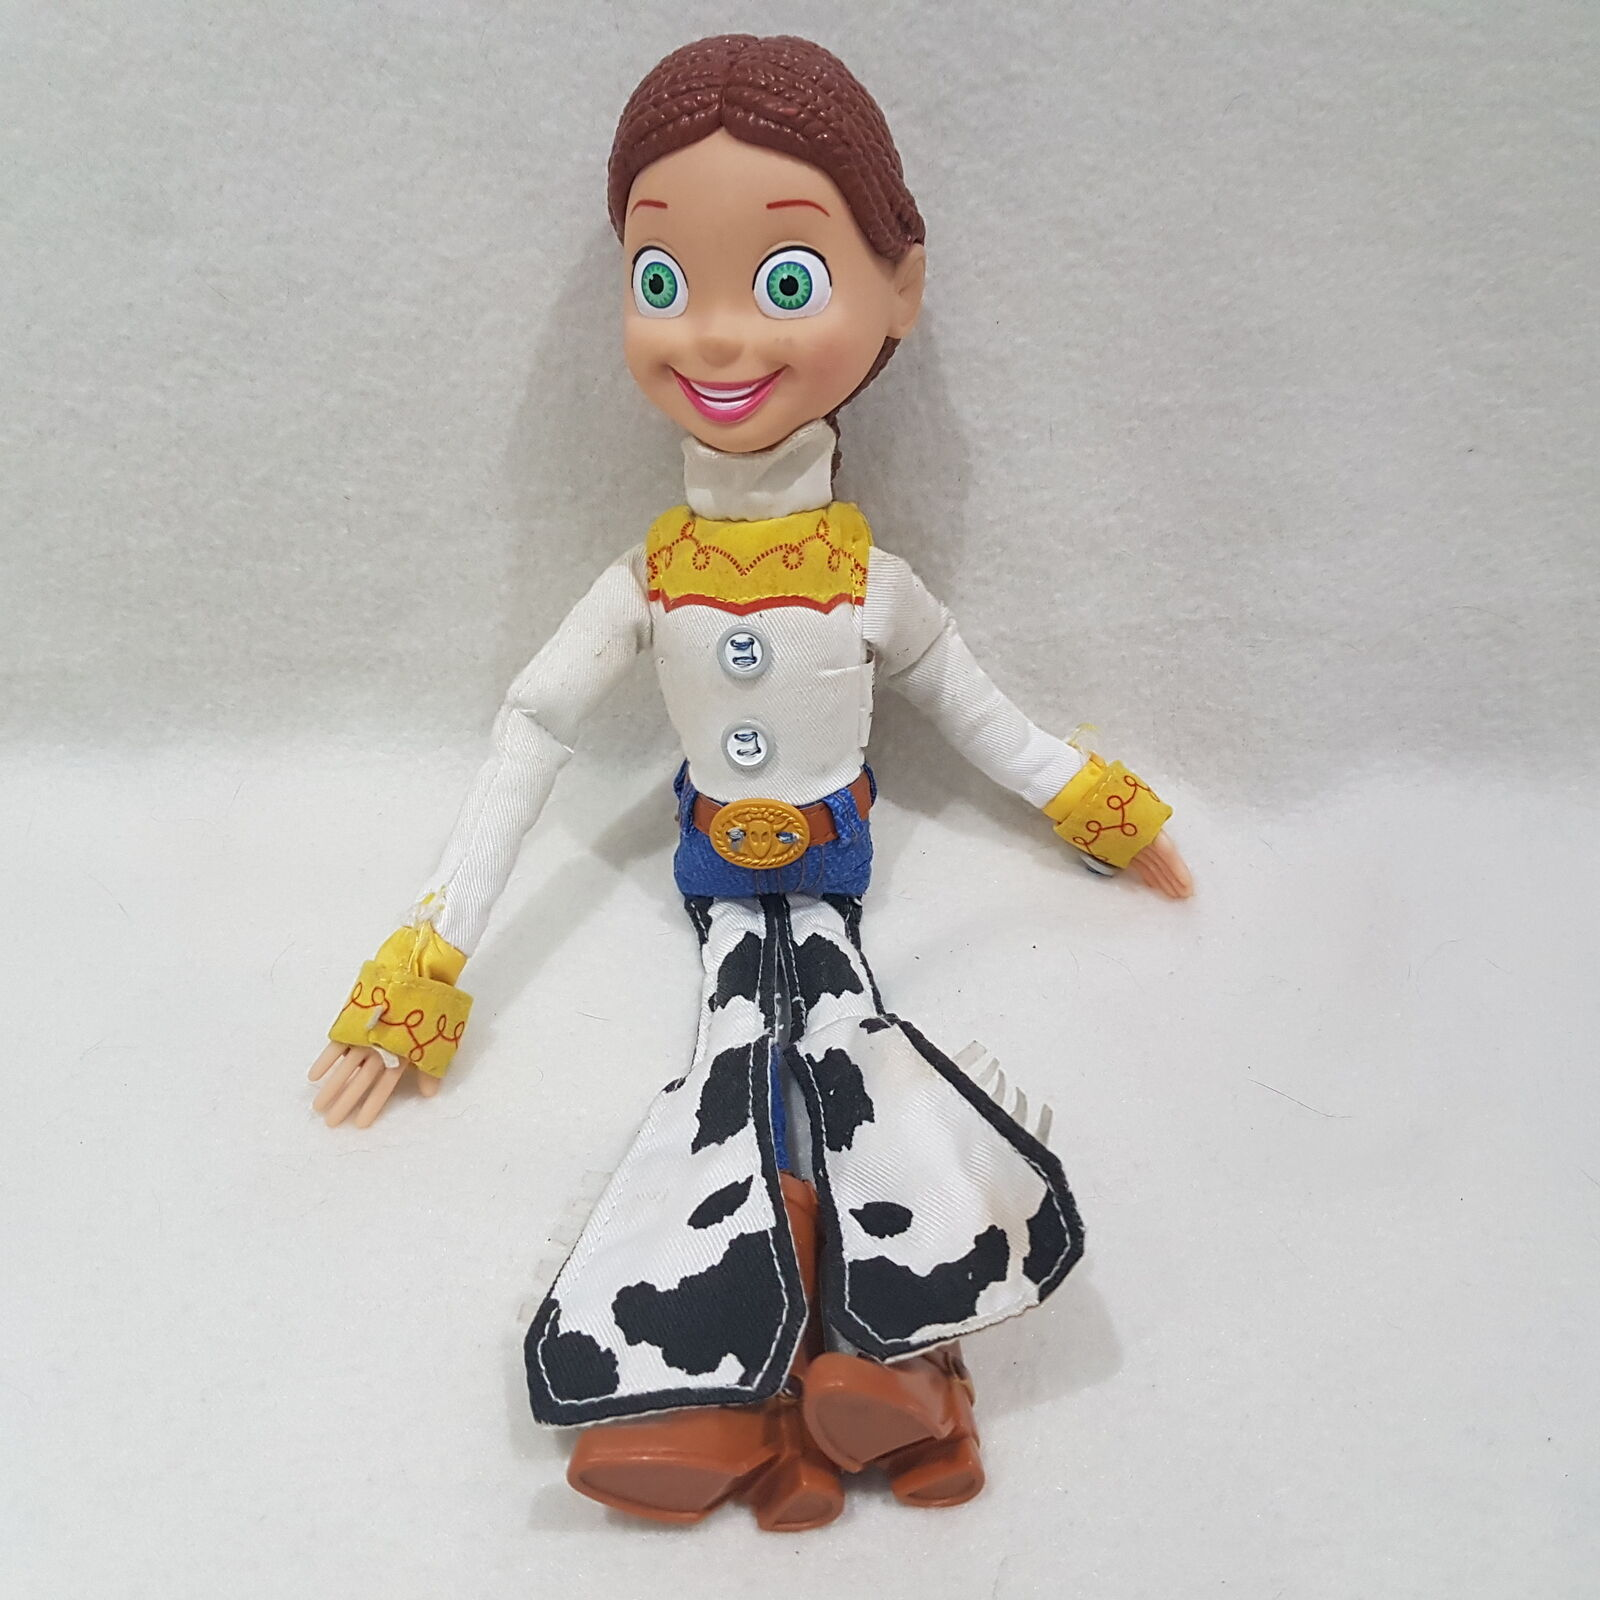 Jessie From Toy Story Pull String Figure TALKING doll rare